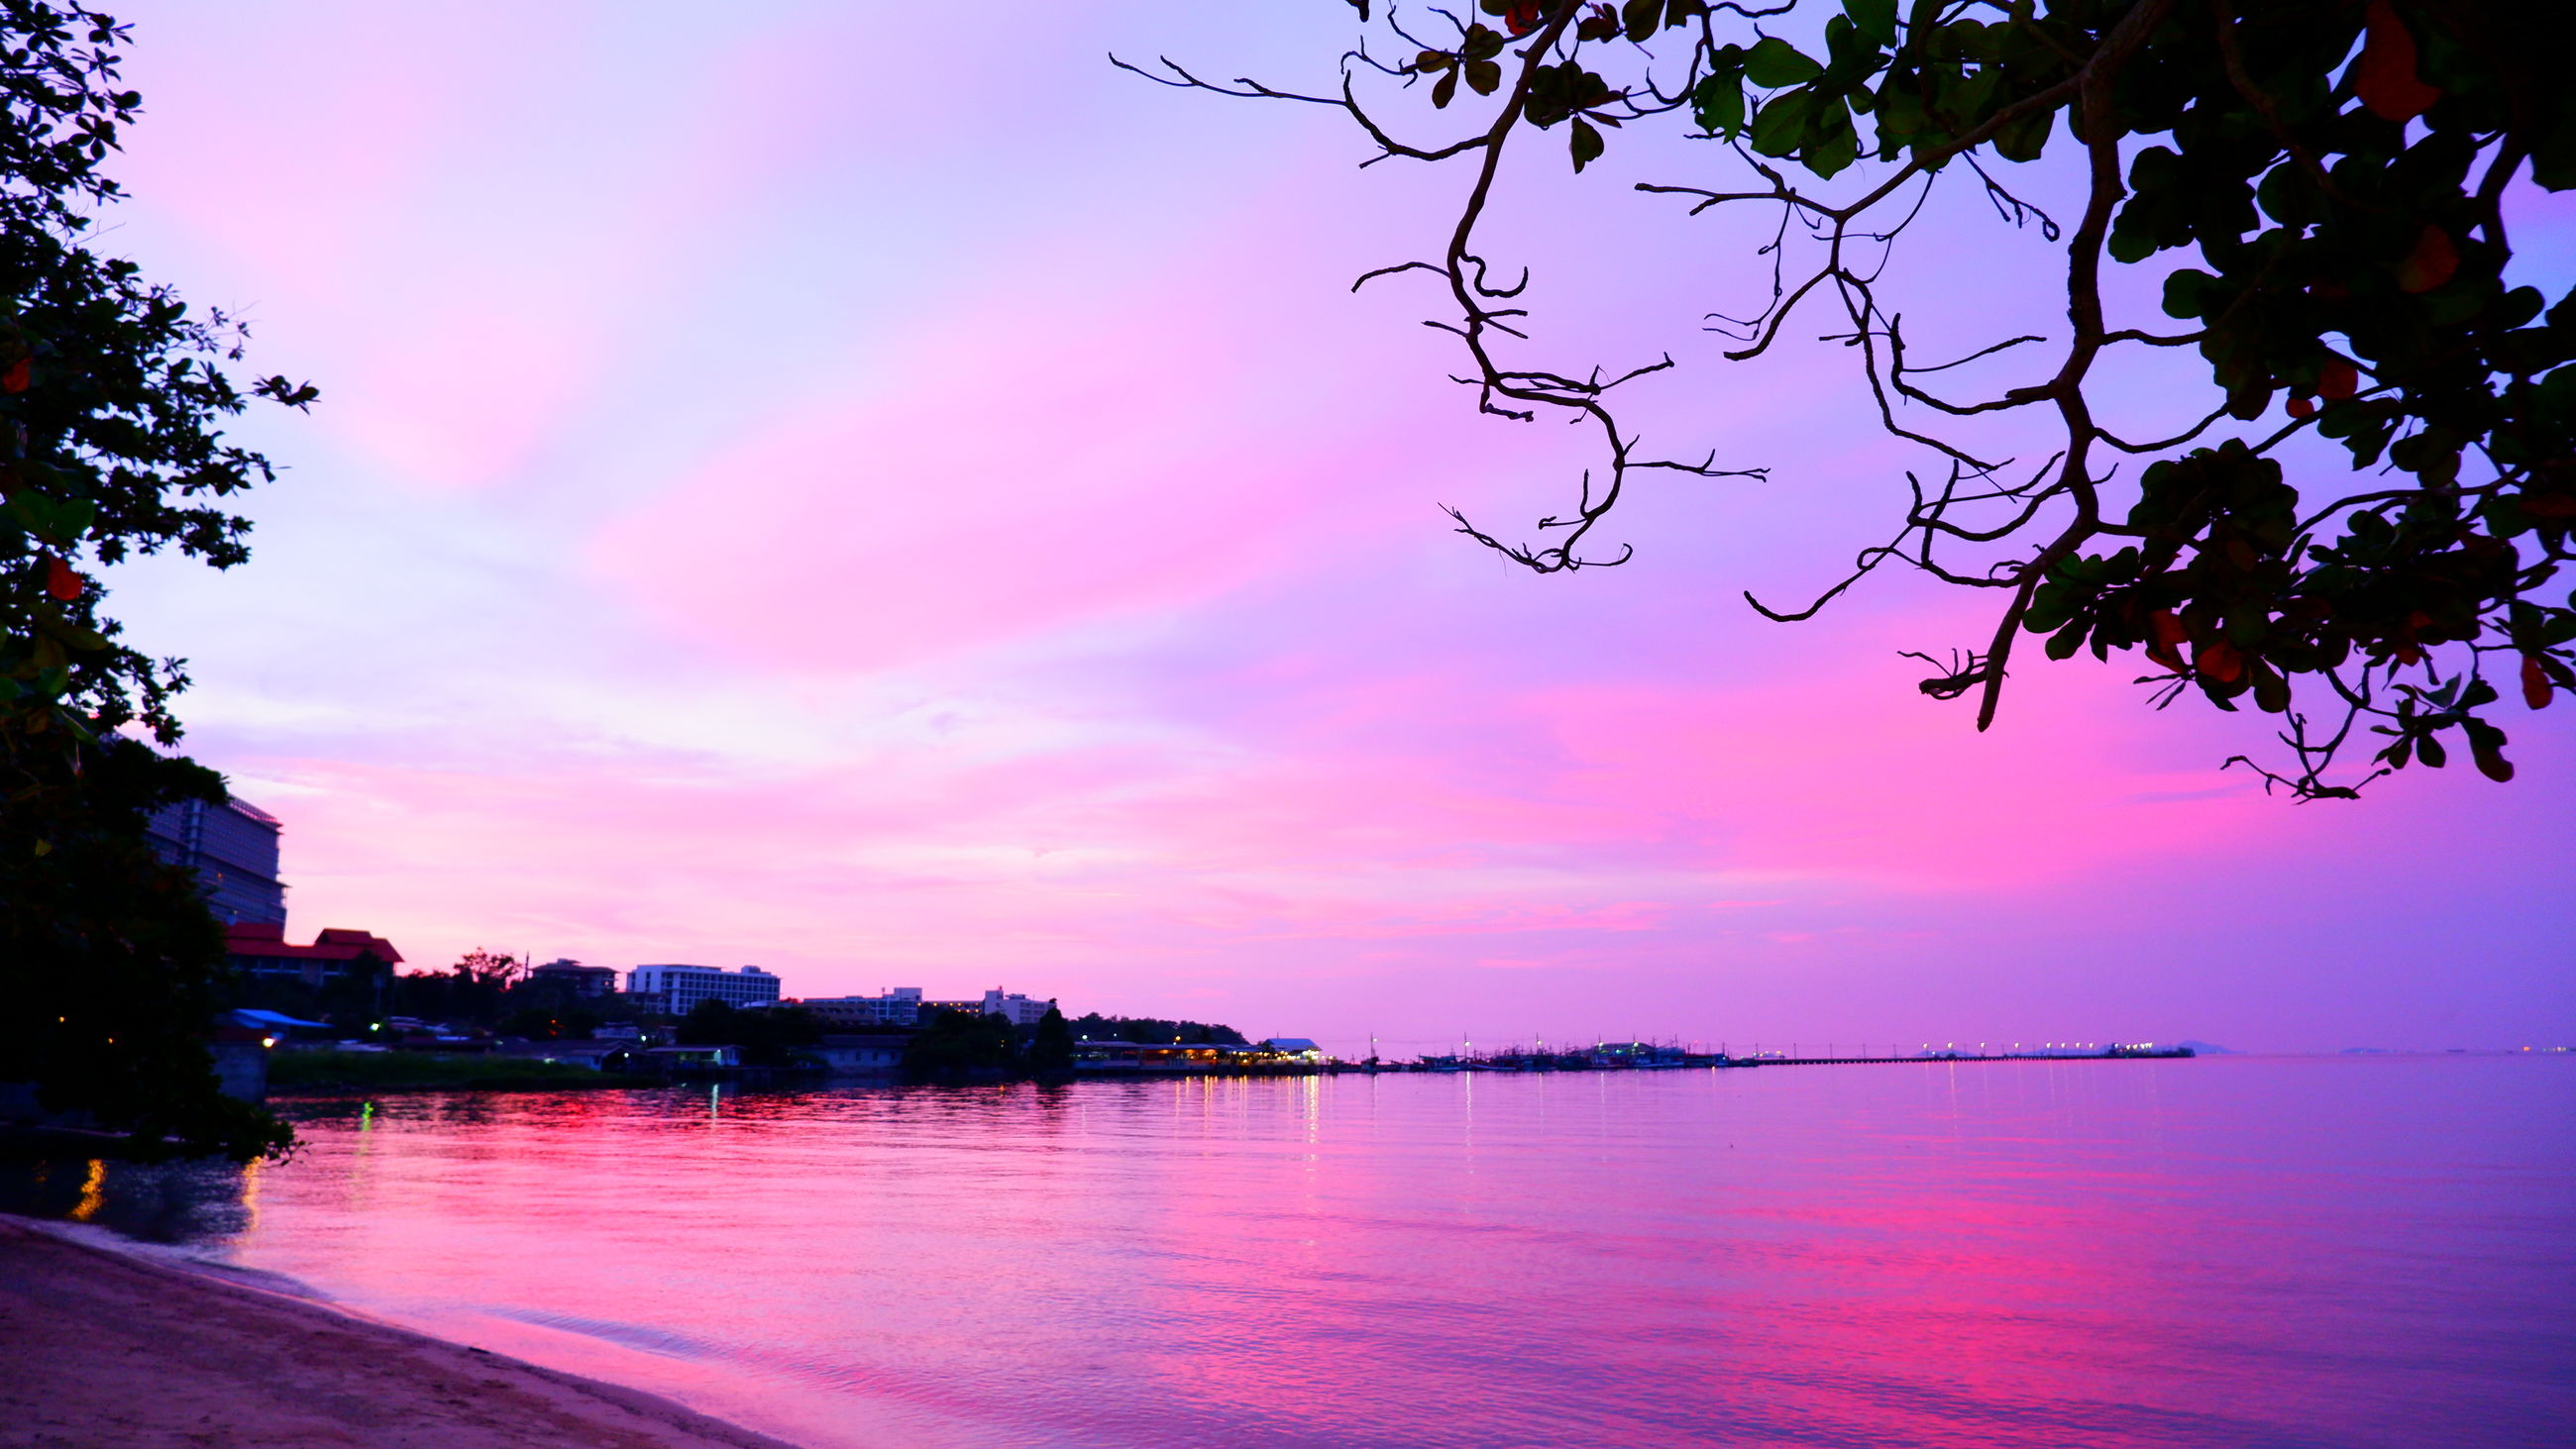 water, sky, tree, beauty in nature, nature, sunset, cloud, scenics - nature, plant, sea, dusk, tranquility, evening, pink, reflection, tranquil scene, no people, silhouette, travel destinations, outdoors, multi colored, architecture, idyllic, landscape, beach, city, land, travel, environment, magenta